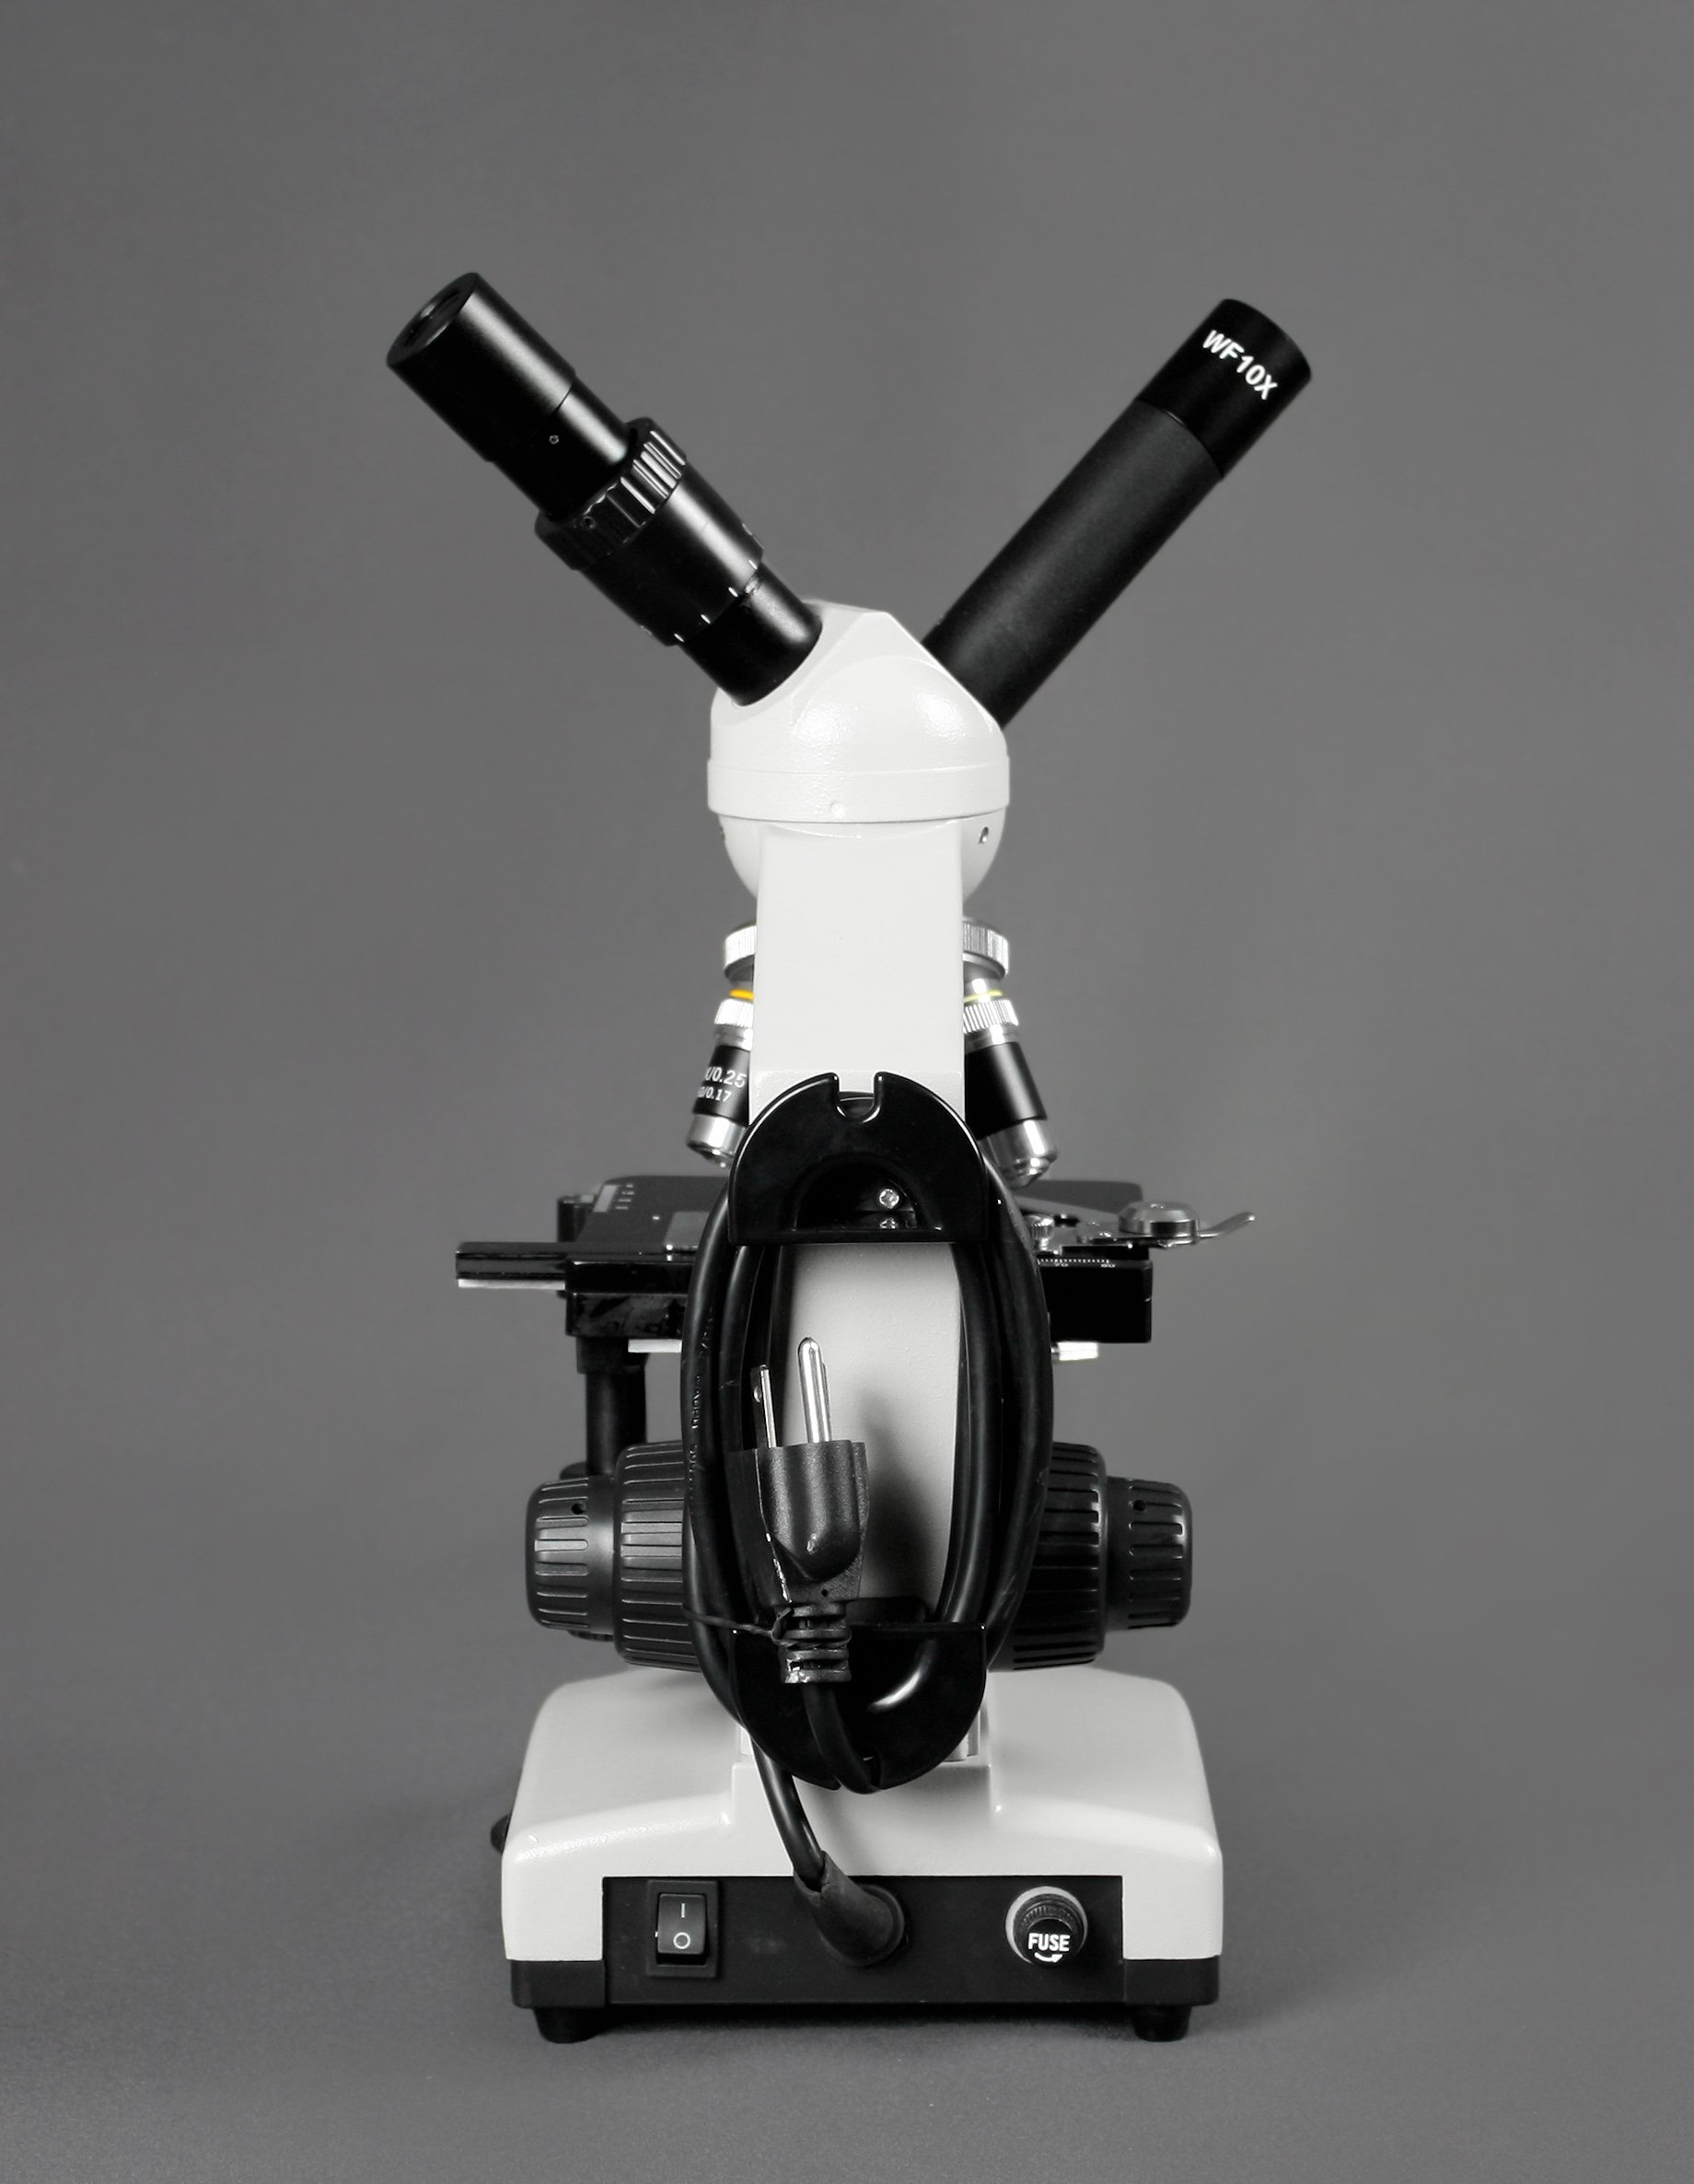 Parco Scientific PBS-500 Dual View Compound Microscope, 10x WF Eyepiece, 40x—1000x Magnification, LED Illumination, 1.25 NA Abbe Condenser, Coaxial Coarse & Fine Focus, Mechanical Stage by Parco Scientific (Image #3)